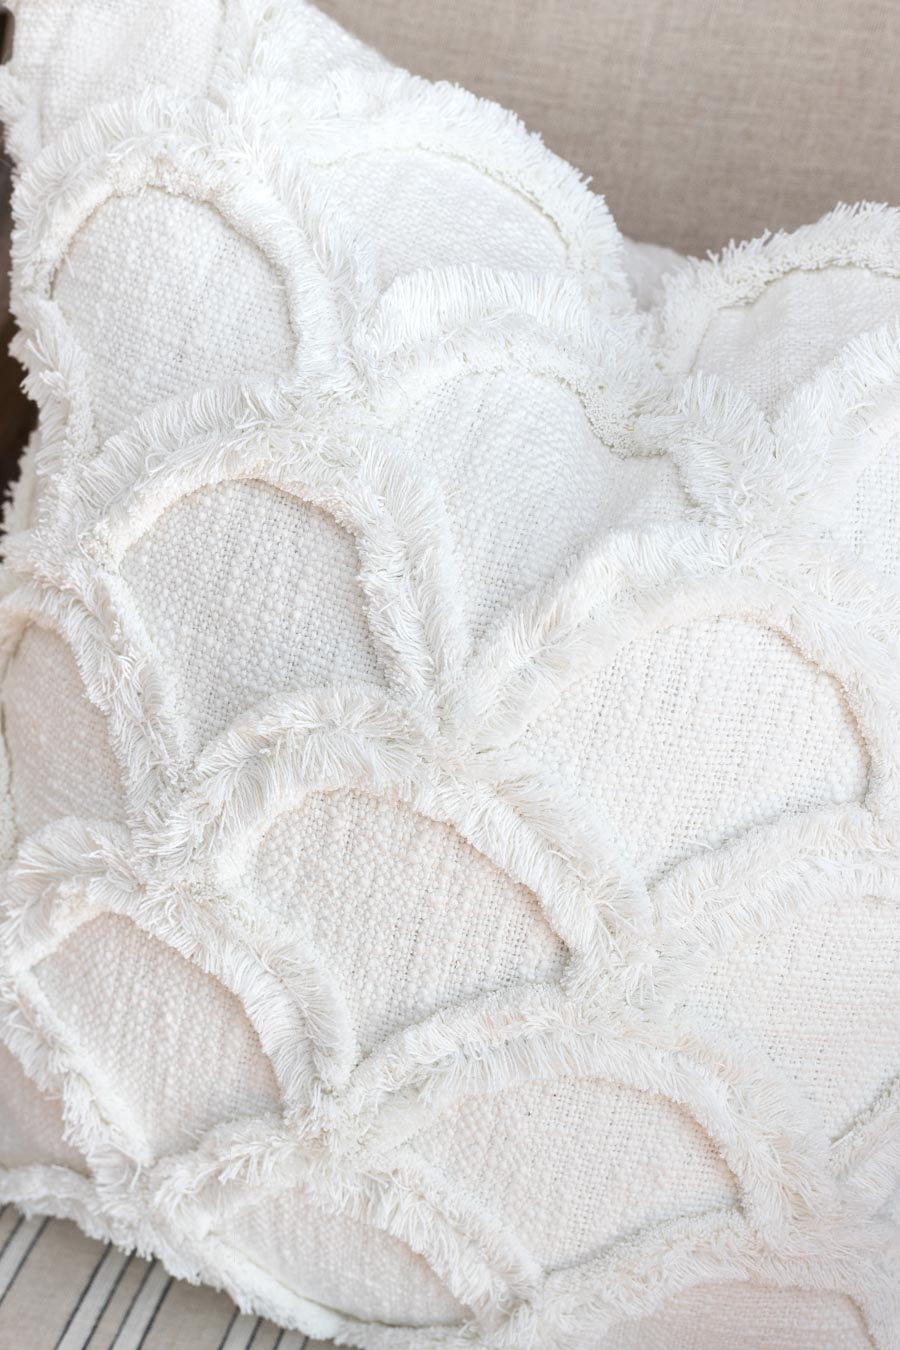 Close up of my gorgeous new white throw pillow - love!